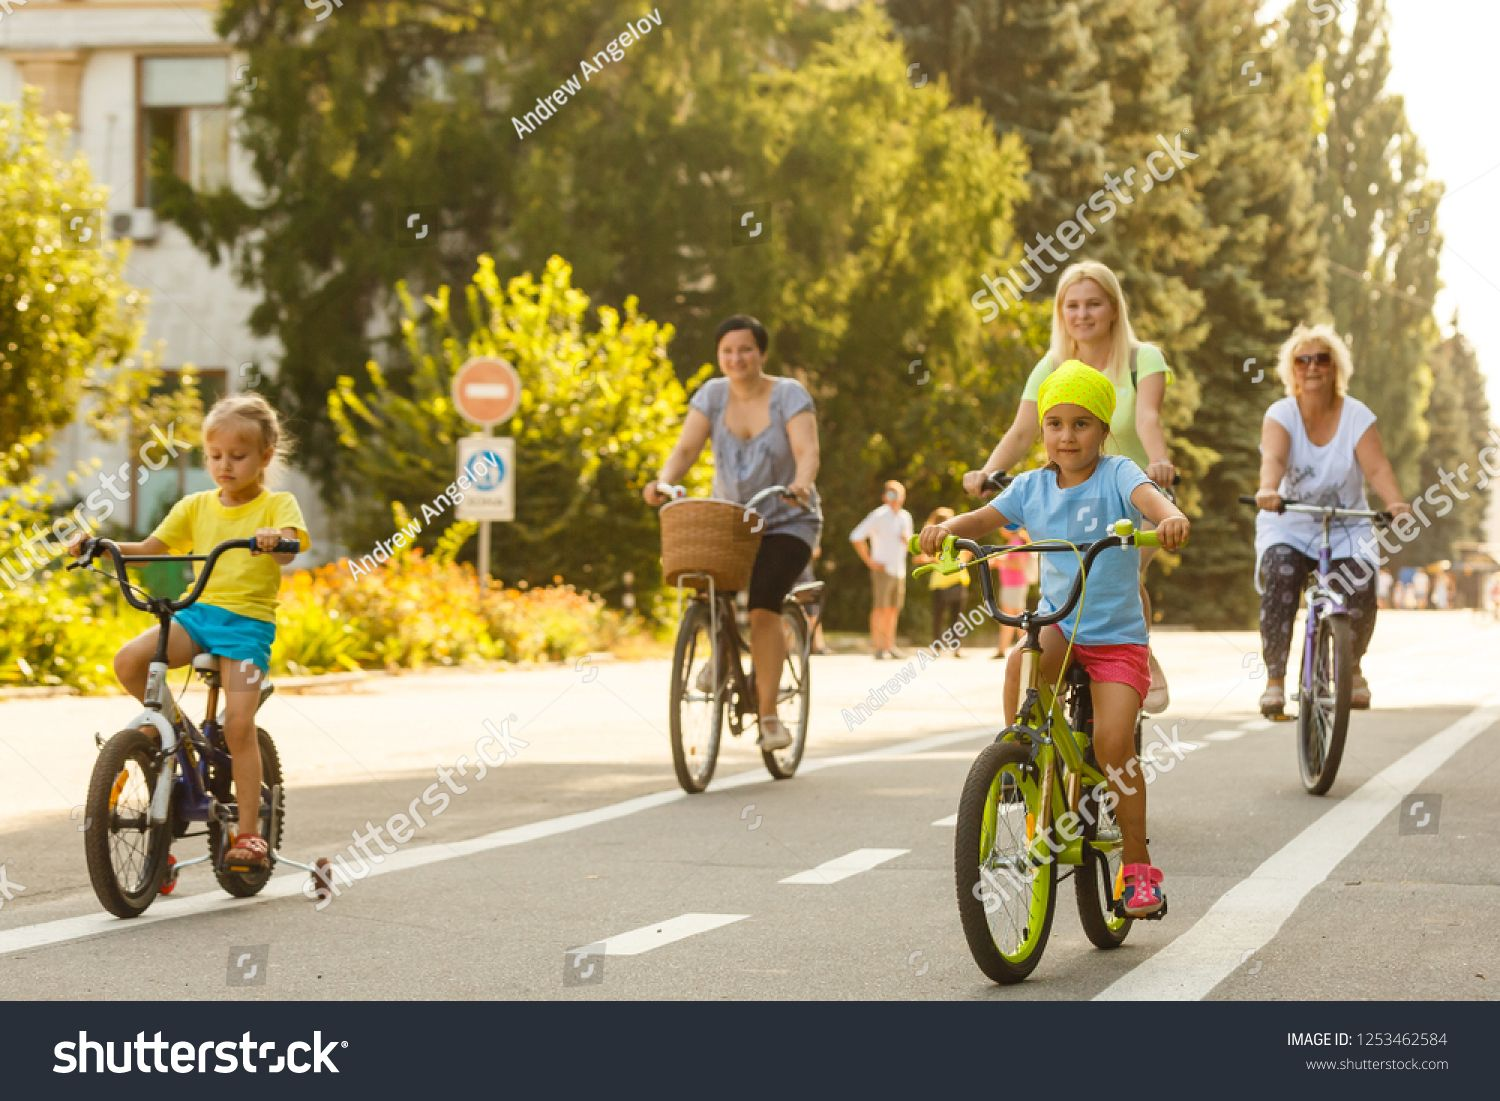 Theme family active sports outdoor recreation A group of people is a big family of 6 people standing posing on mountain bikes in a city park on a road on a sunny day in a...